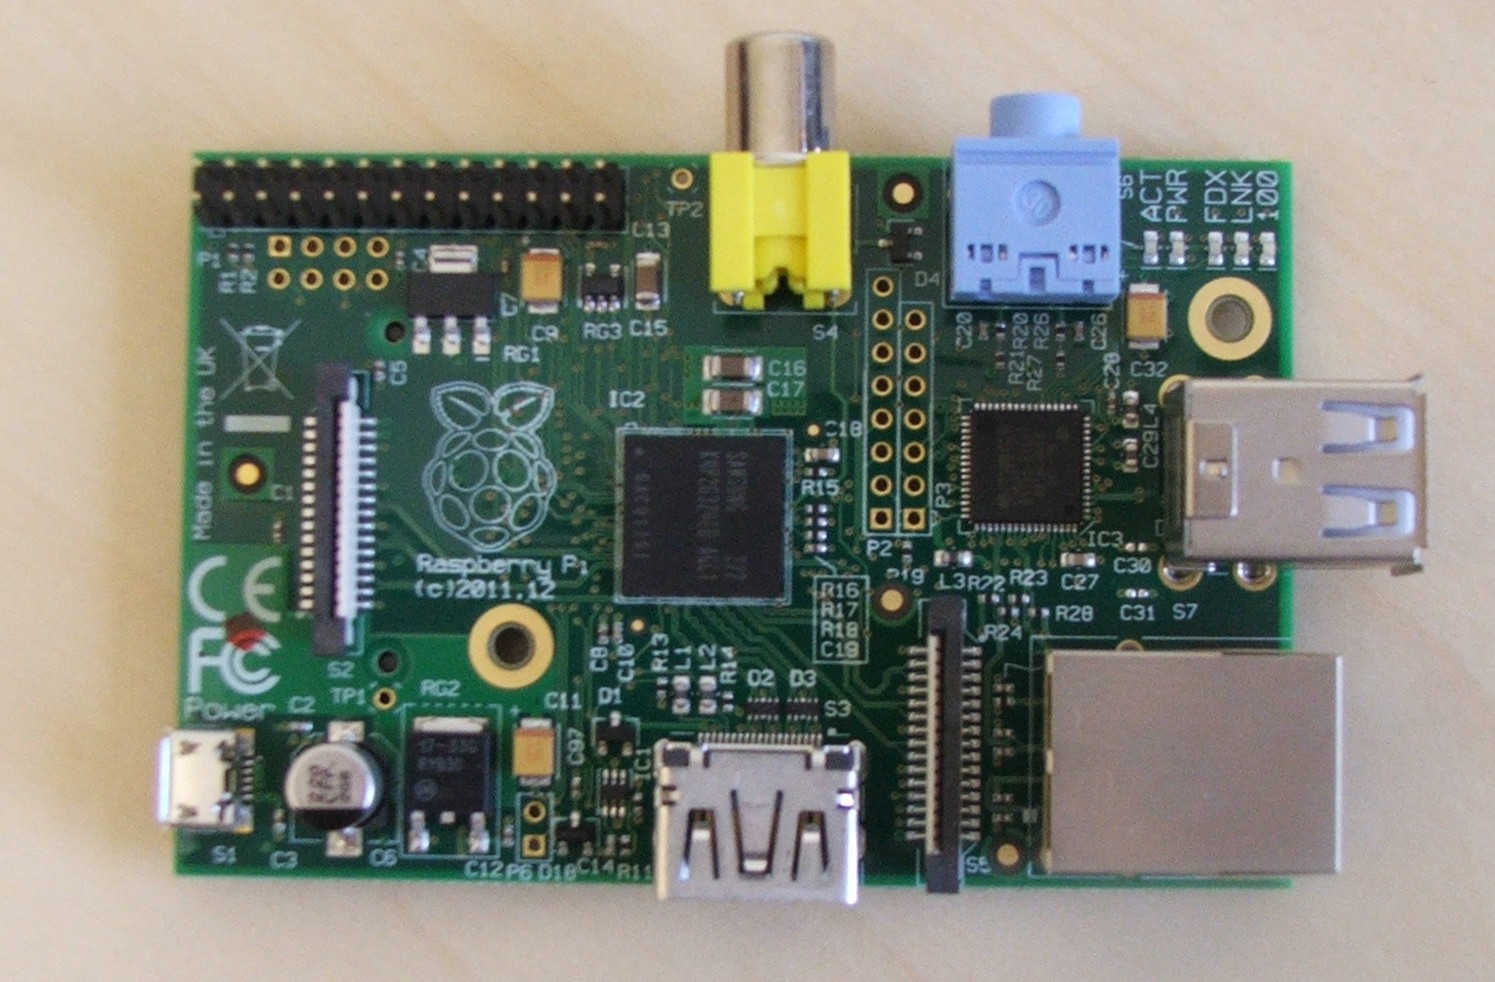 Basic Image Processing - Physical Computing with Raspberry Pi